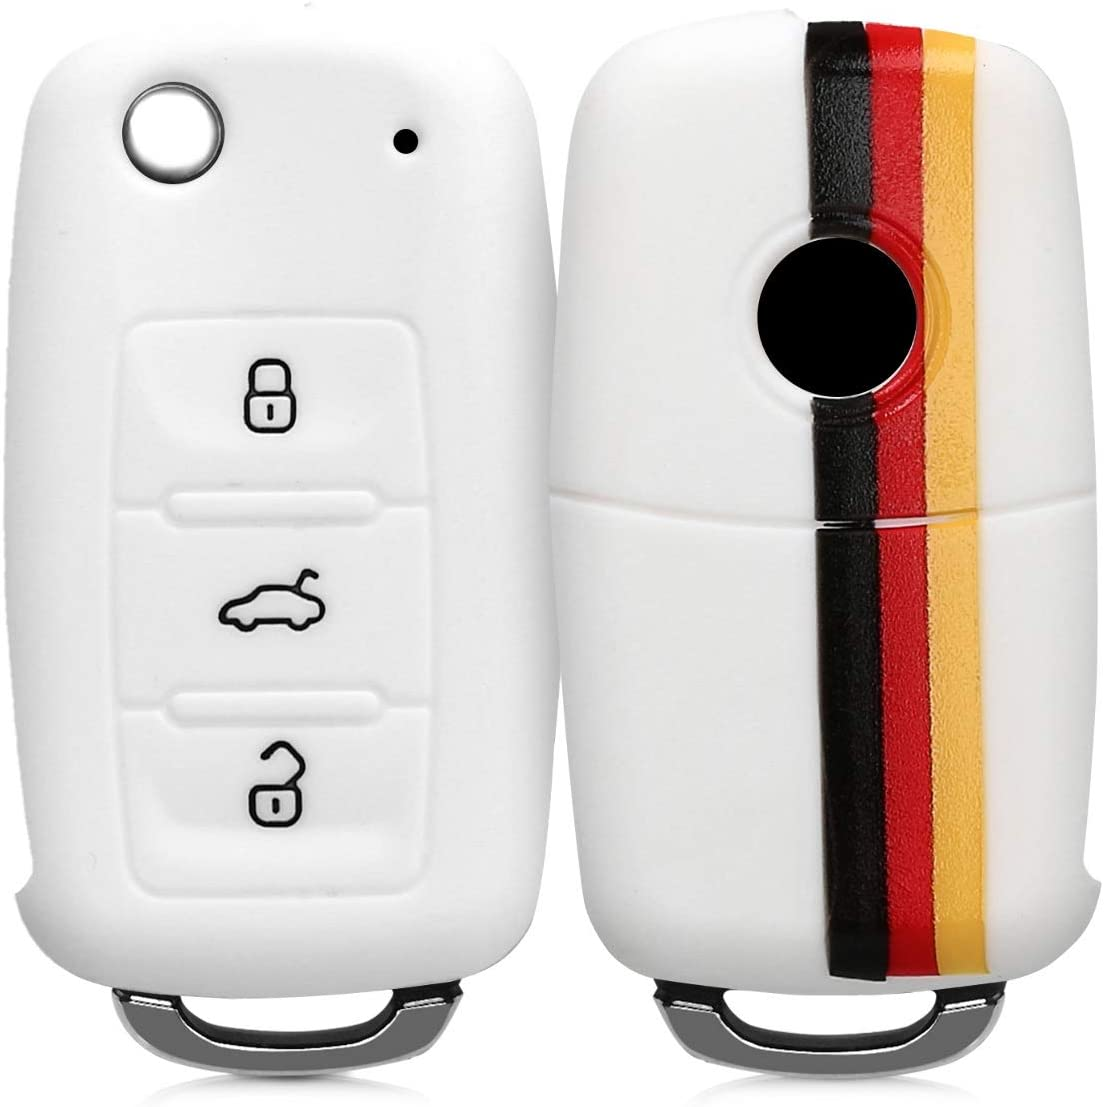 kwmobile Car Key Cover Compatible with VW Skoda SEAT 3 Button Car Key Germany Black//Yellow//White Silicone Protective Key Fob Cover